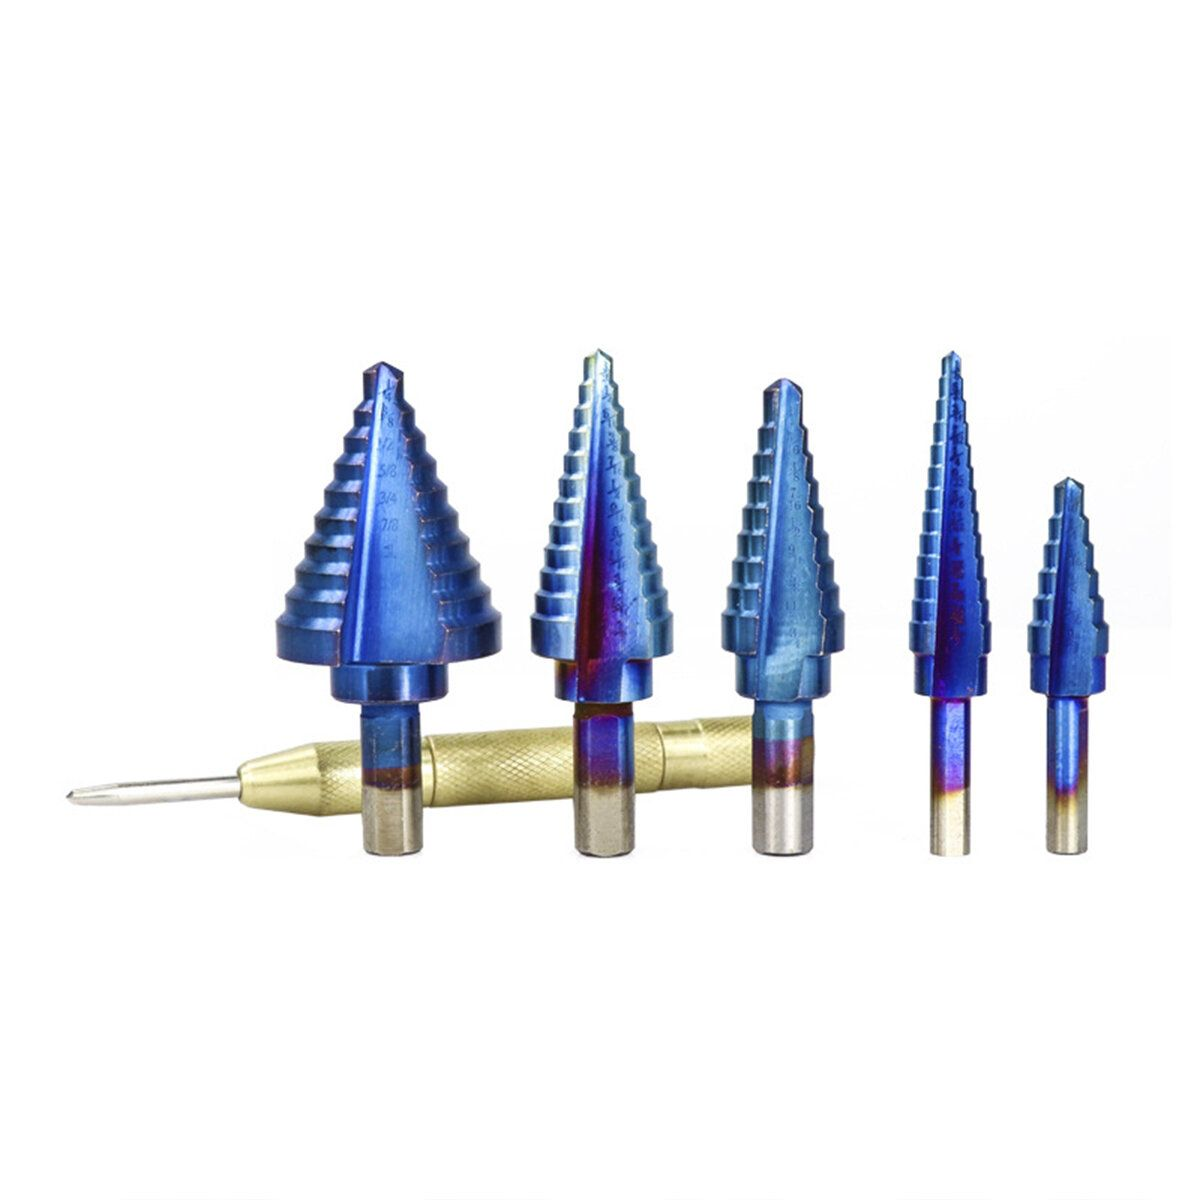 5pcs HSS Straight Flute Step Drill Bit Nano Blue Coated Wood Metal Hole Cutter with Center Punch